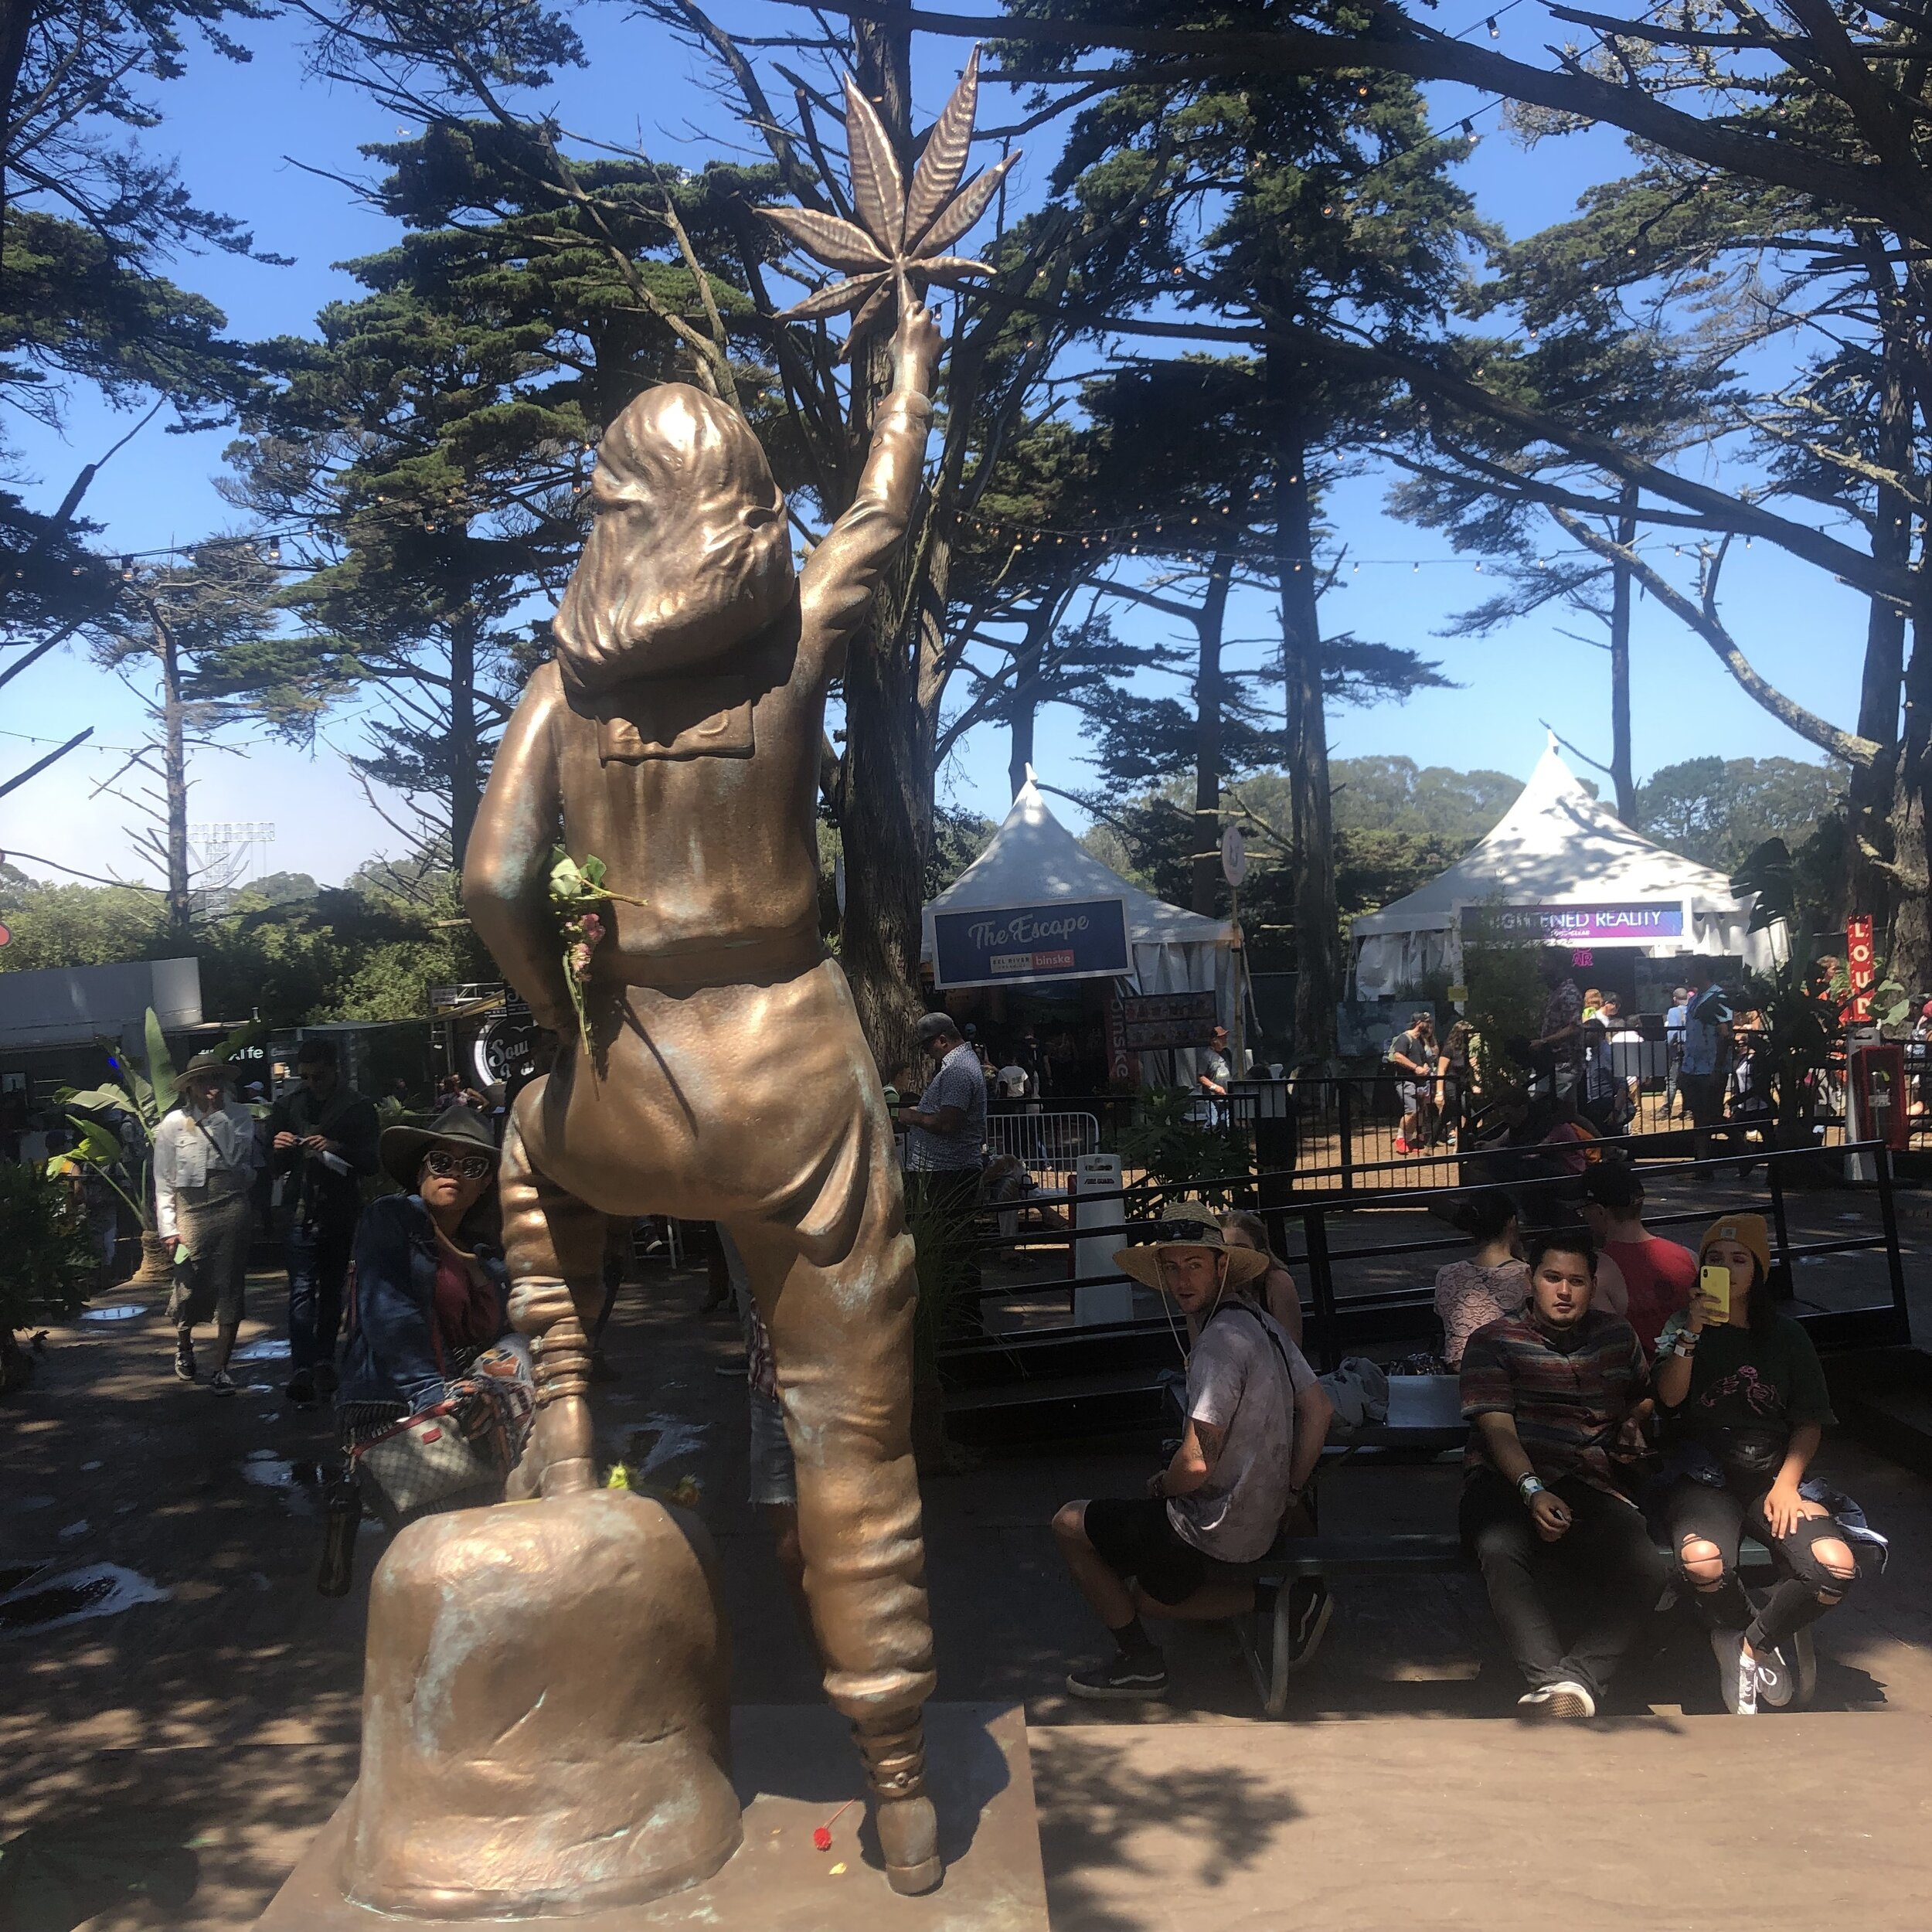 A statue of Mary Jane inside Grass Lands.